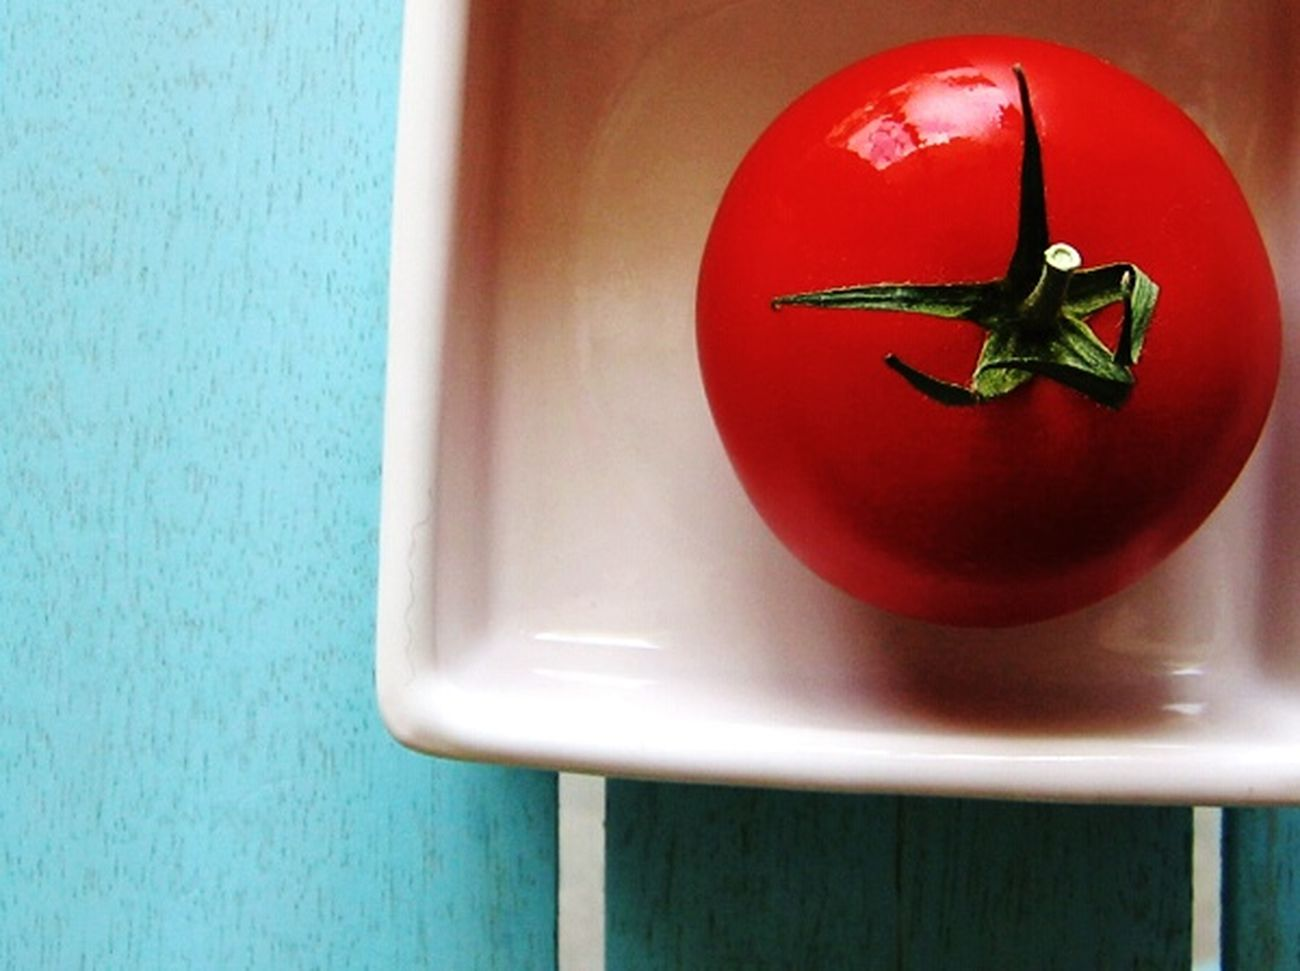 Red&white Red&blue Tomato Vegetables & Fruits Food Photography Colorphotography Tomato Series